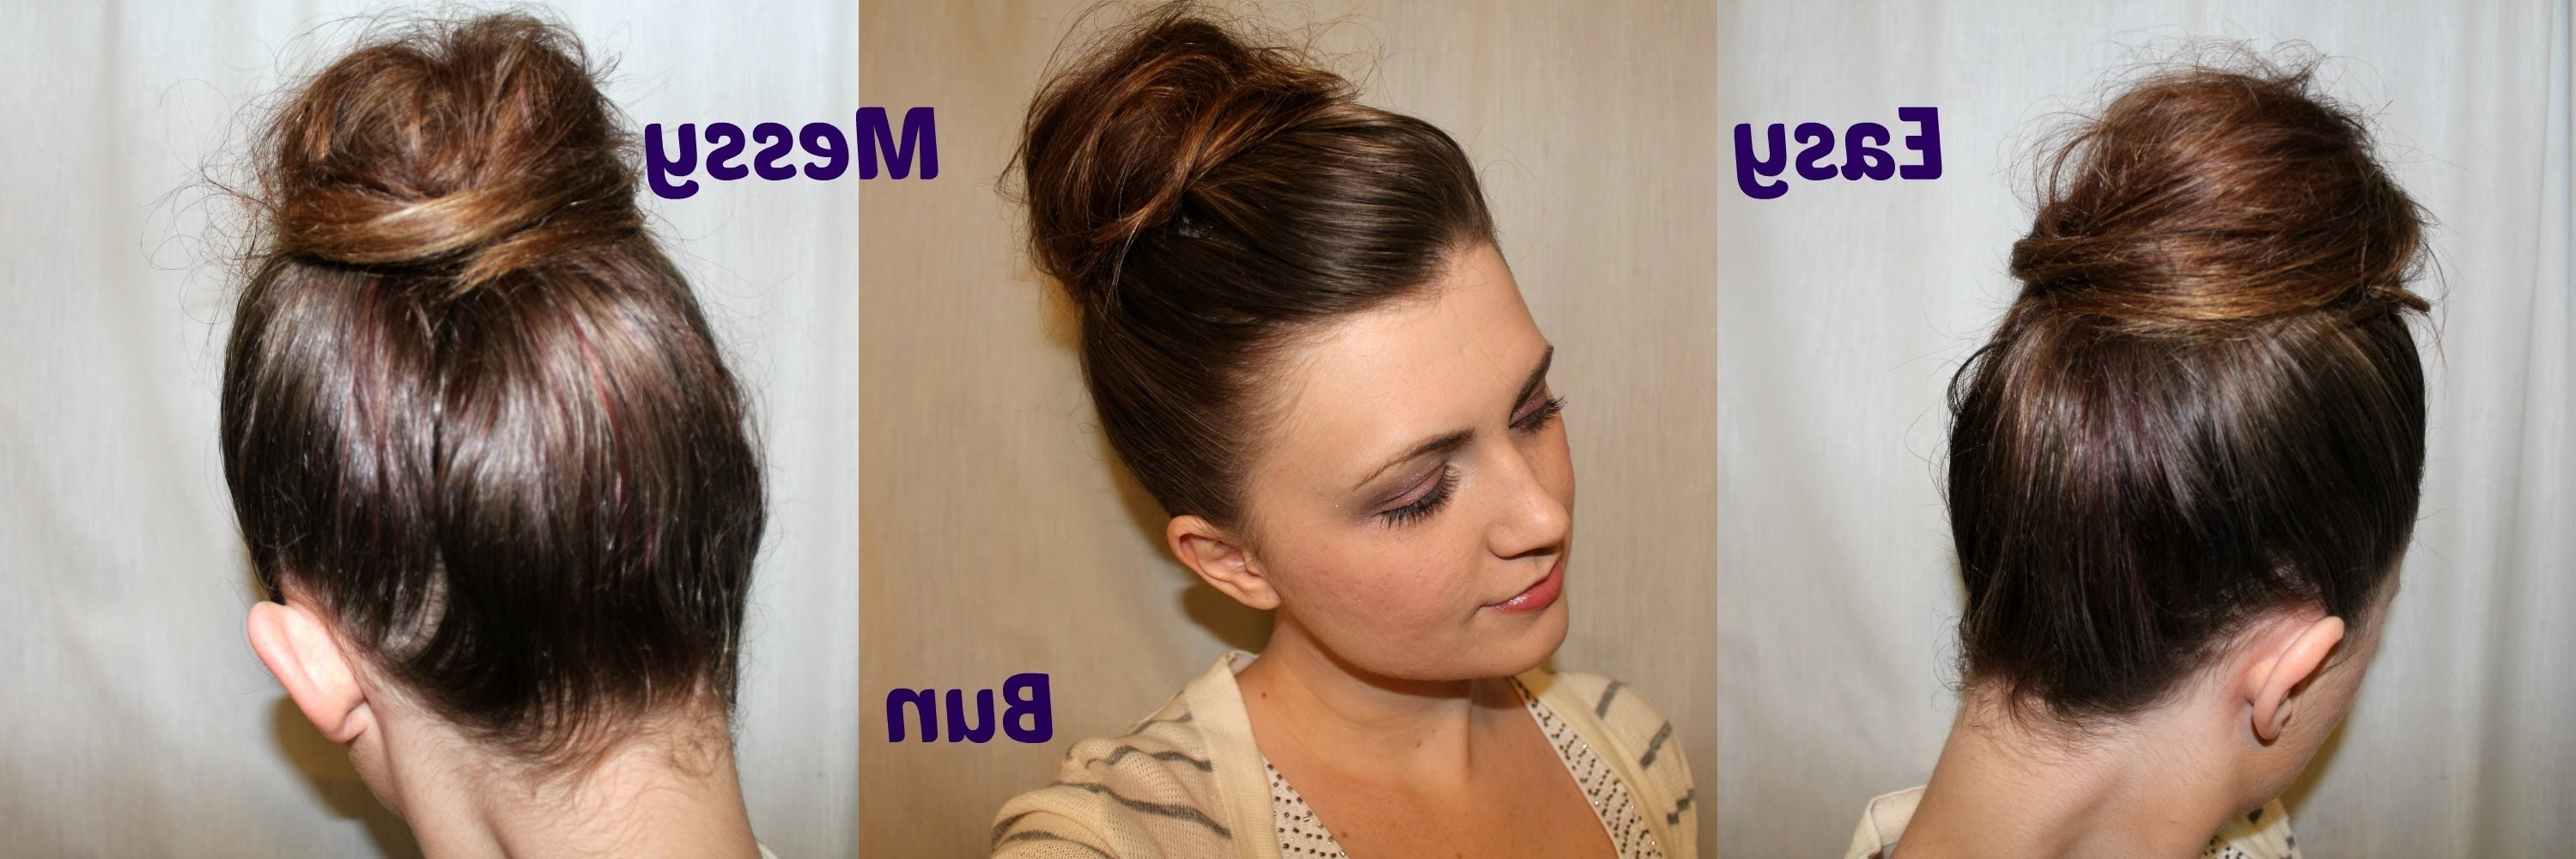 Quick And Easy Hairstyles For Medium Length Hair – Hairstyle For For Quick And Easy Updo Hairstyles For Medium Hair (View 9 of 15)